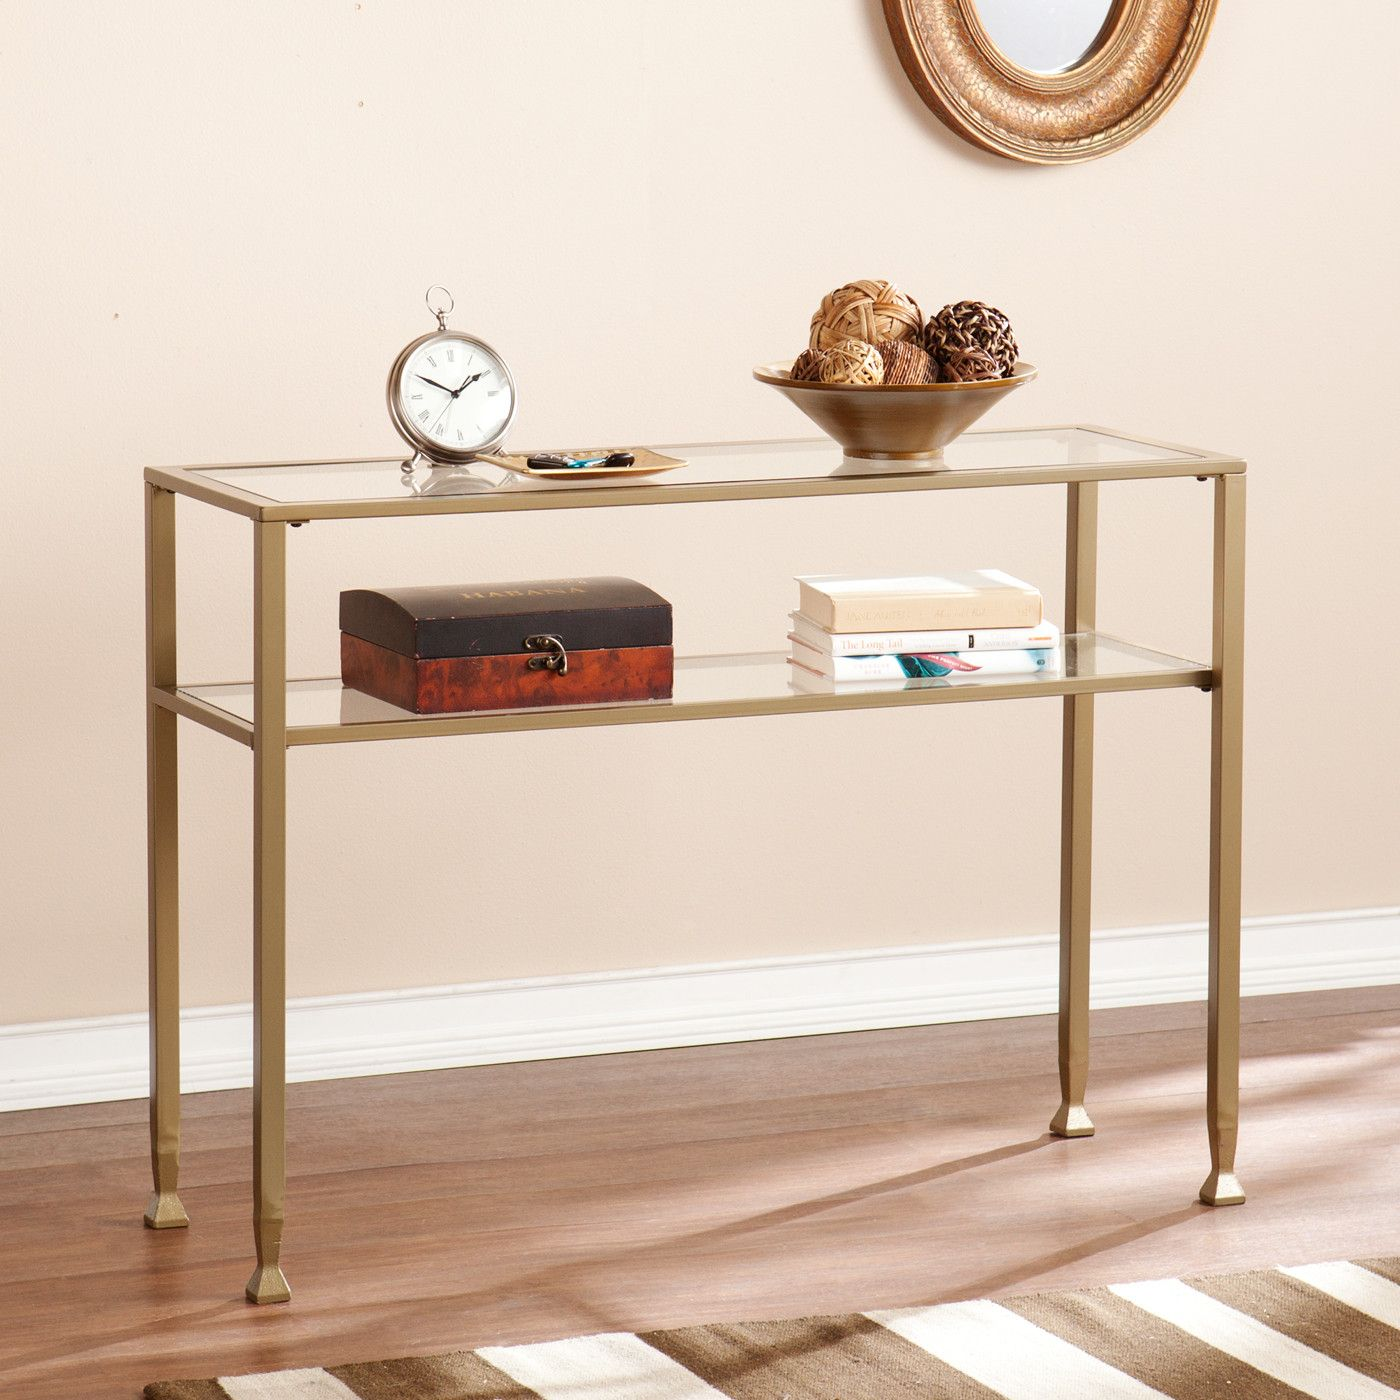 gold furniture pin doces and metal abobrinhas table glass tables pinterest console